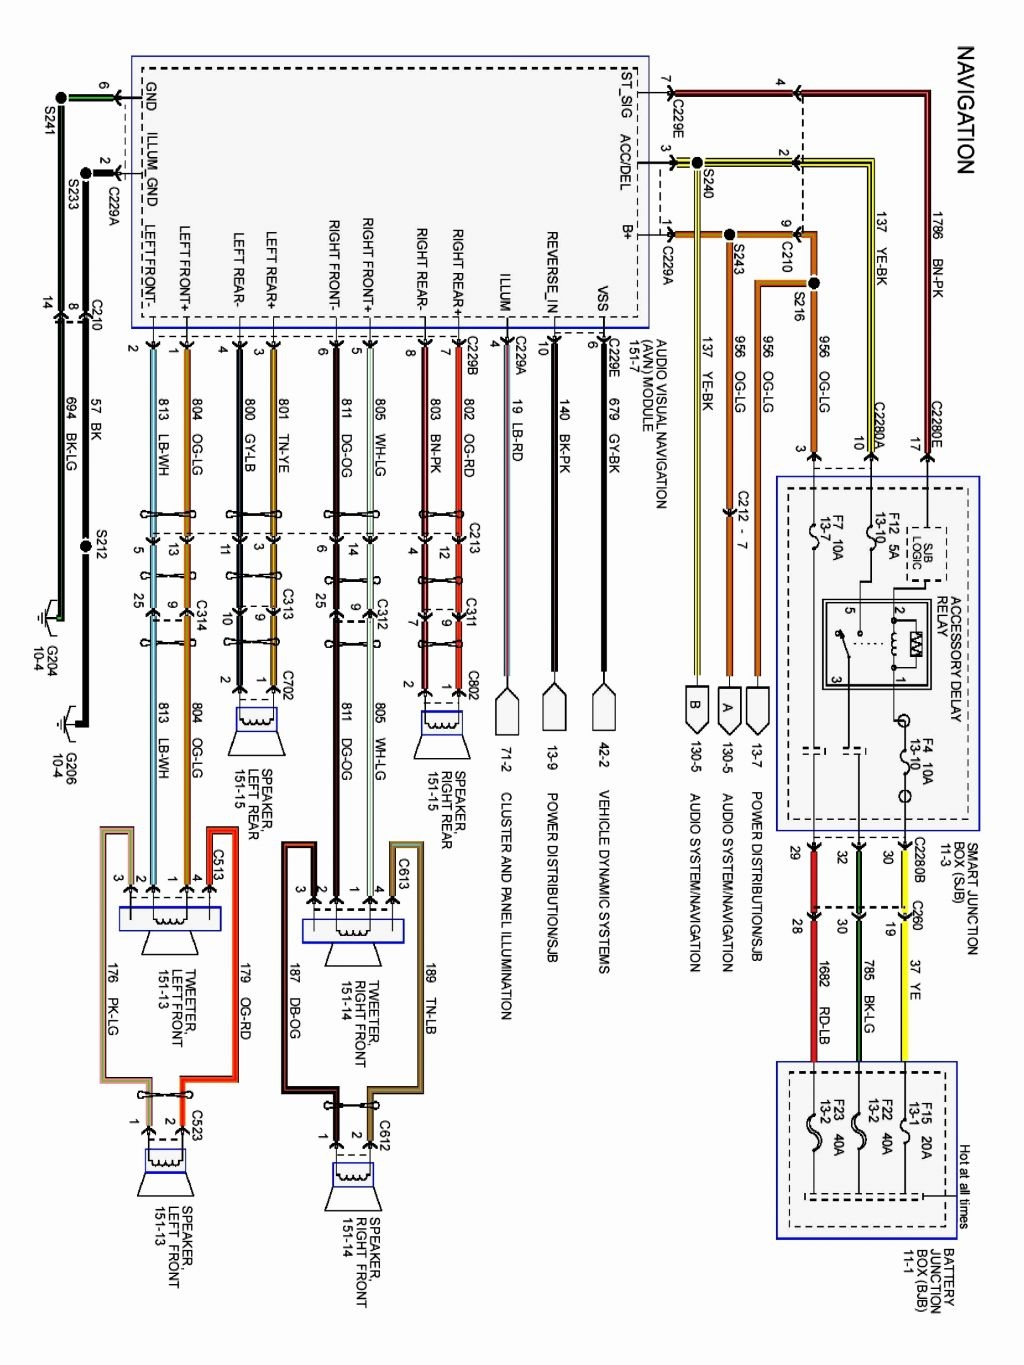 ford radio wiring diagram download Download-2011 ford Escape Radio Wiring Diagram 2003 ford Explorer Radio Wiring Diagram Awesome 2006 ford 10-a